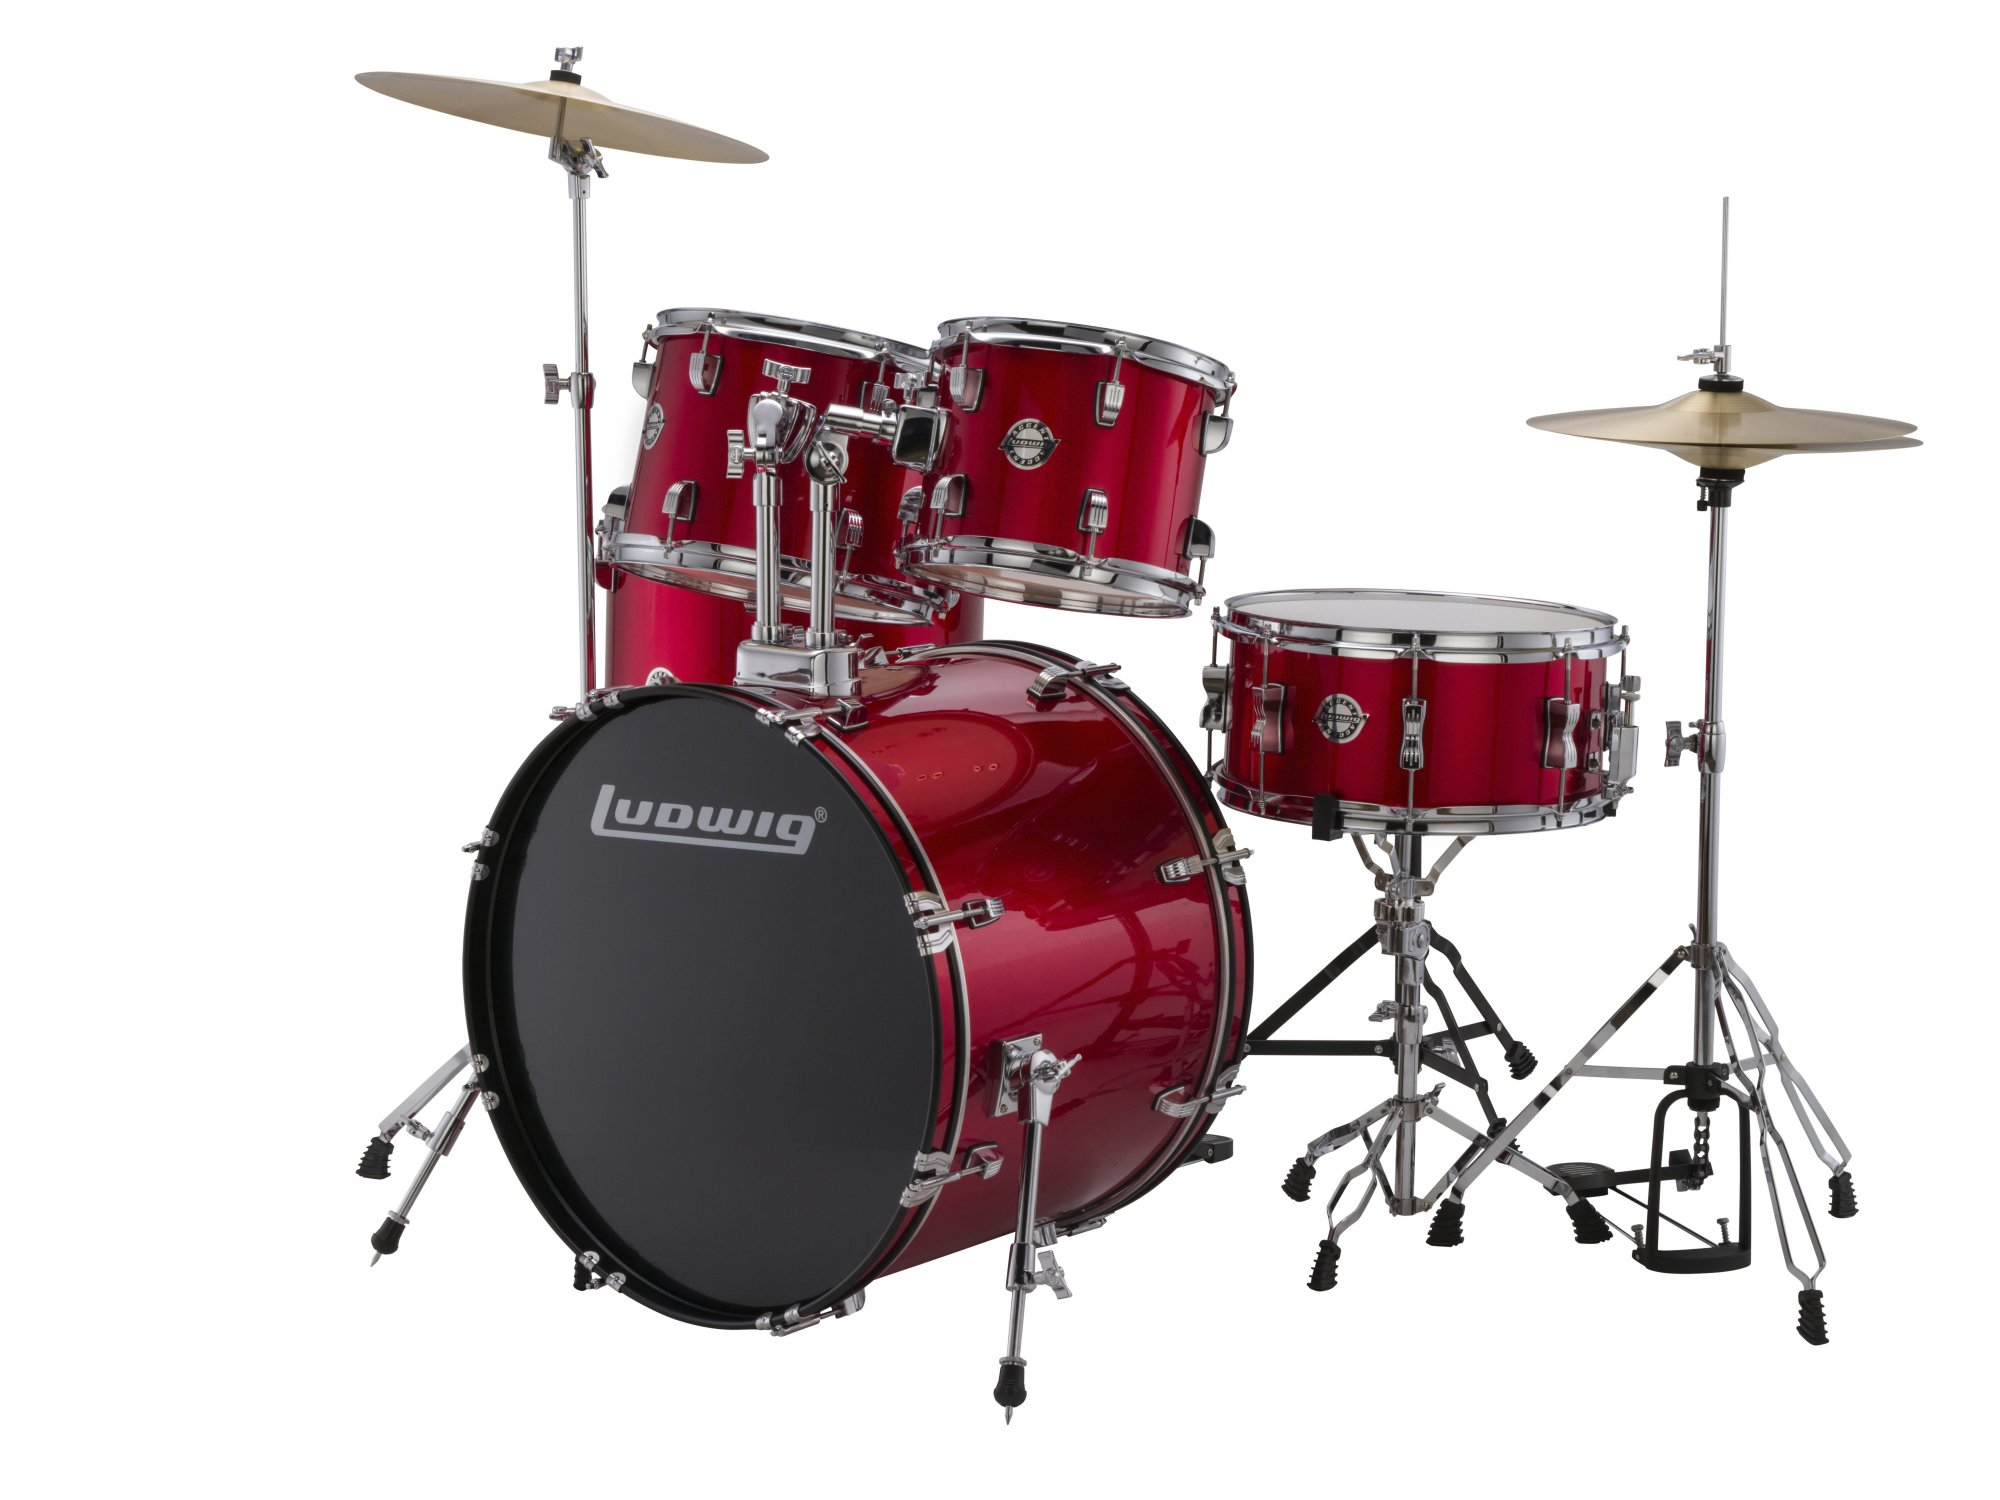 Ludwig LC17014 Accent Fuse 5-Piece Drum Kit w/ Hardware, Cymbals, & Throne - Red Foil